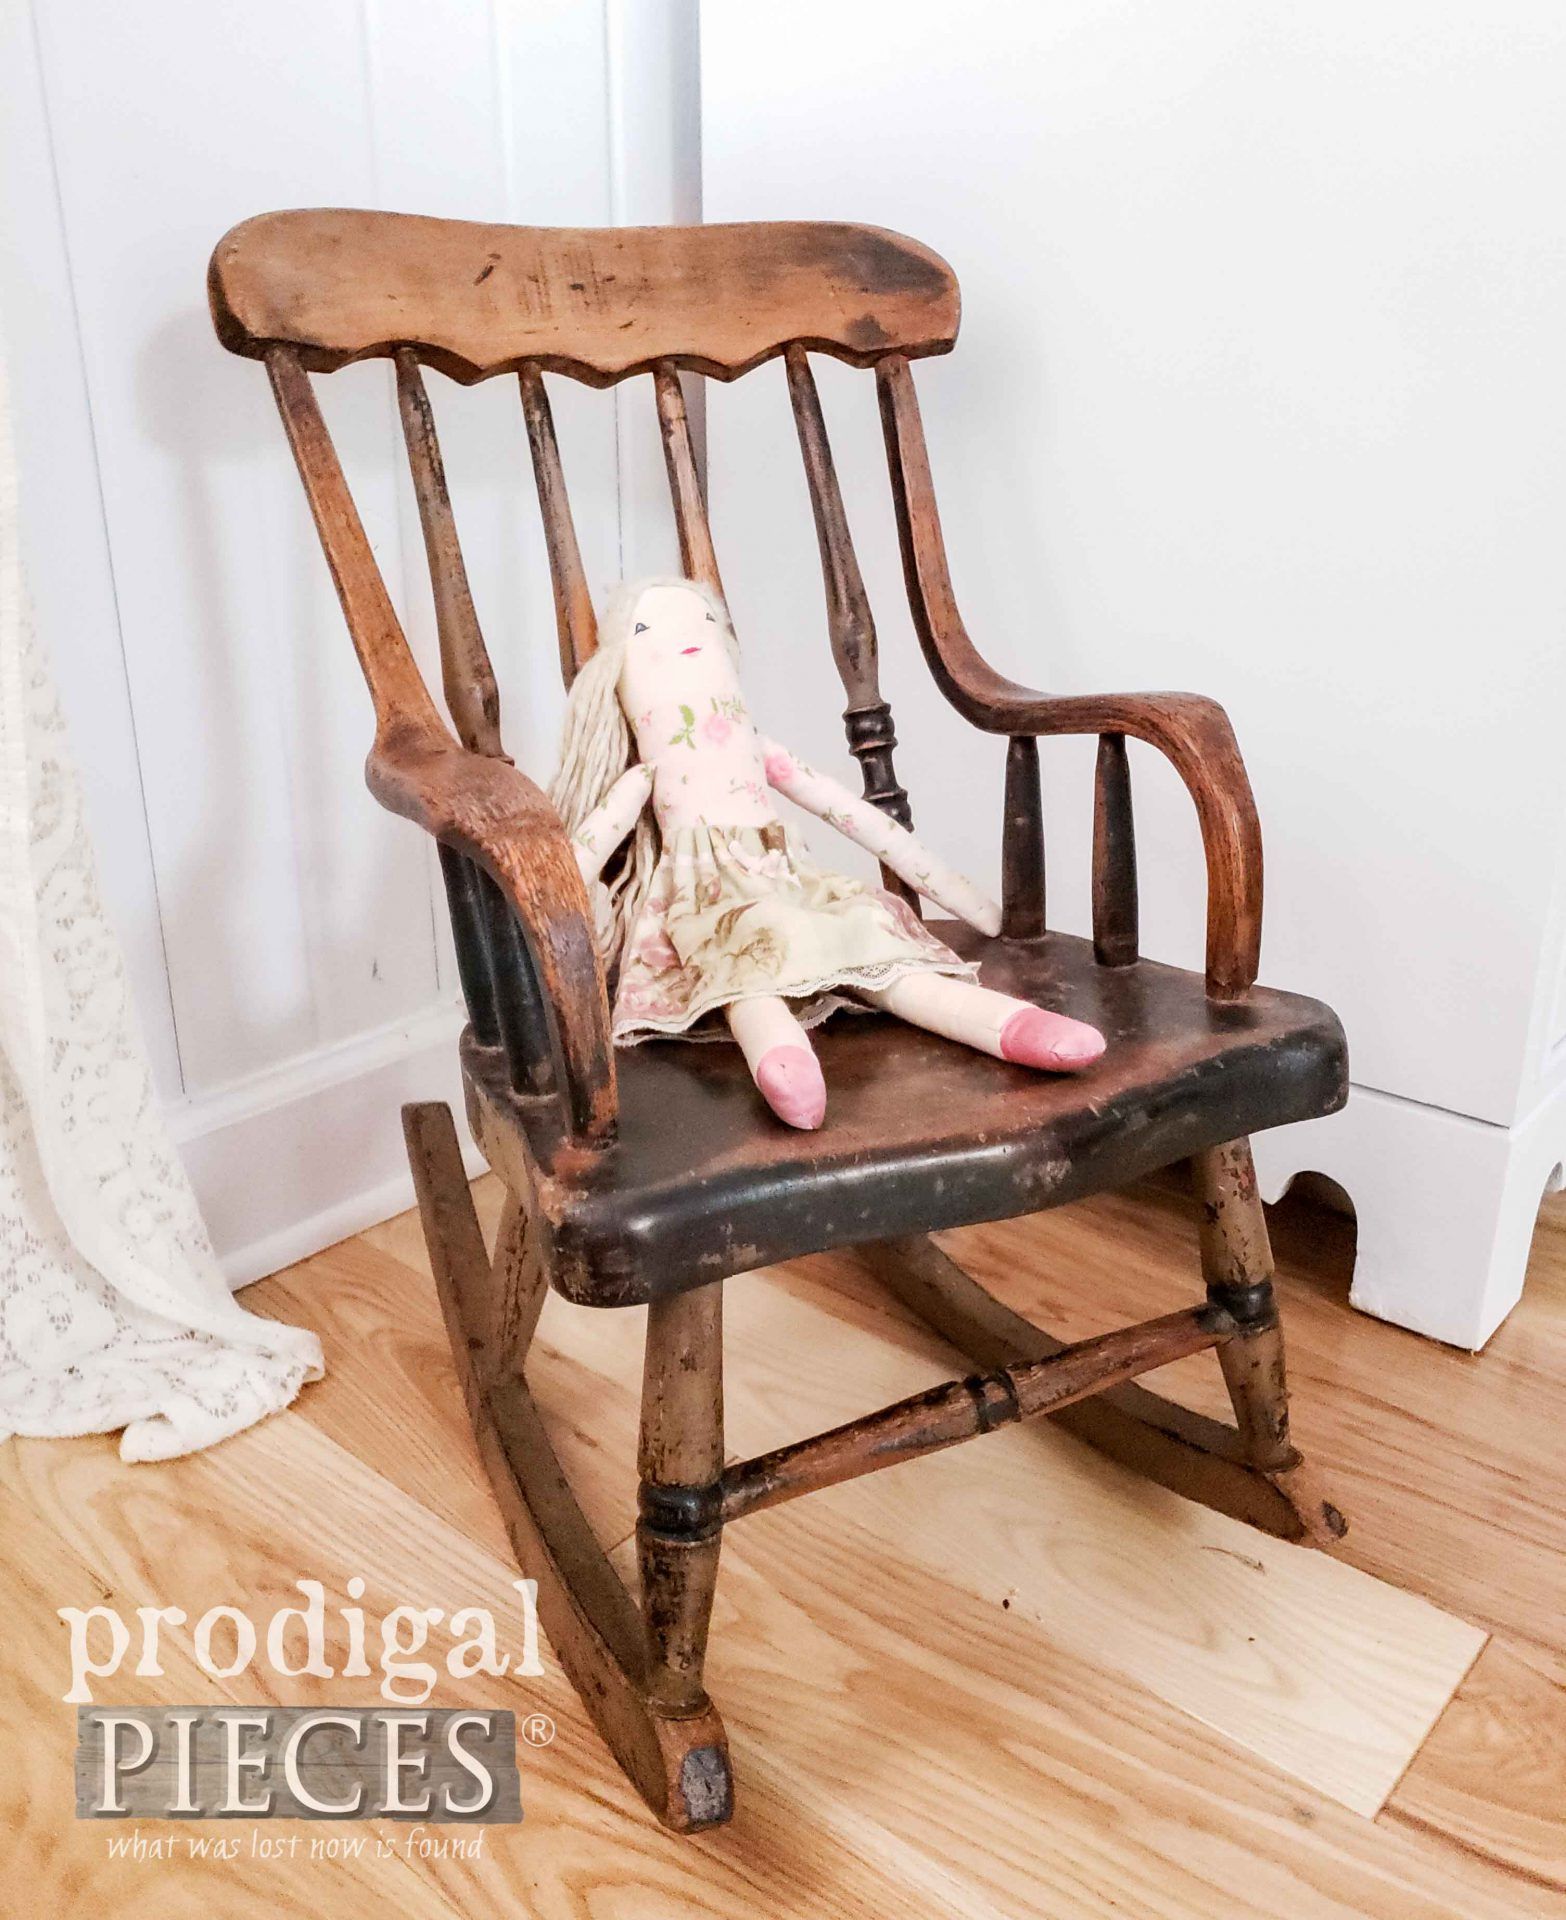 Antique Child's Rocking Chair with Handmade Doll by Larissa of Prodigal Pieces | prodigalpieces.com #prodigalpieces #antique #handmade #doll #baby #home #homedecor